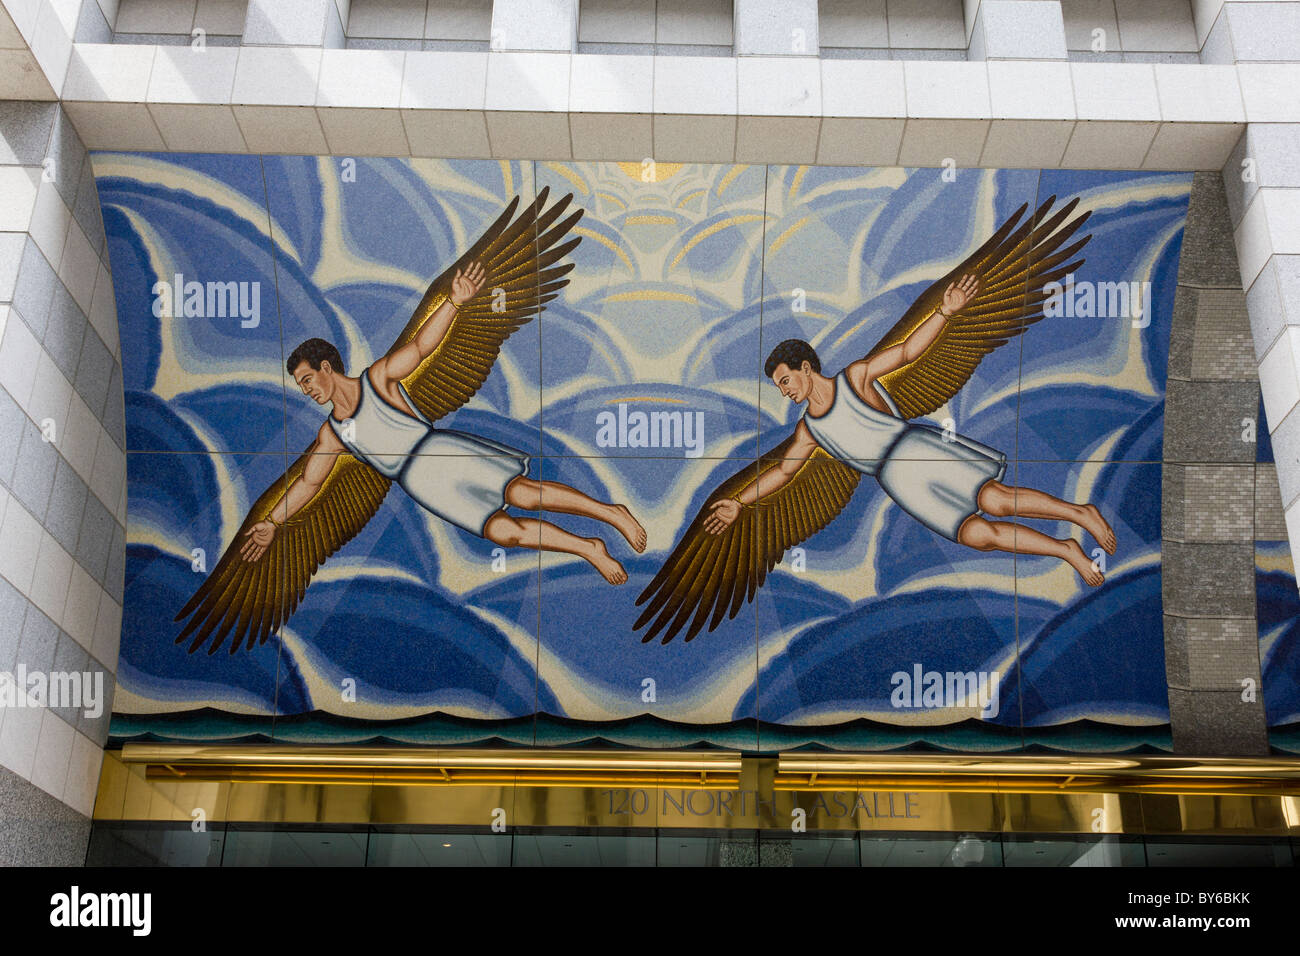 mosaic of Daedalus by Roger Brown, 120 North La Salle Street, Chicago, Illinois, USA - Stock Image